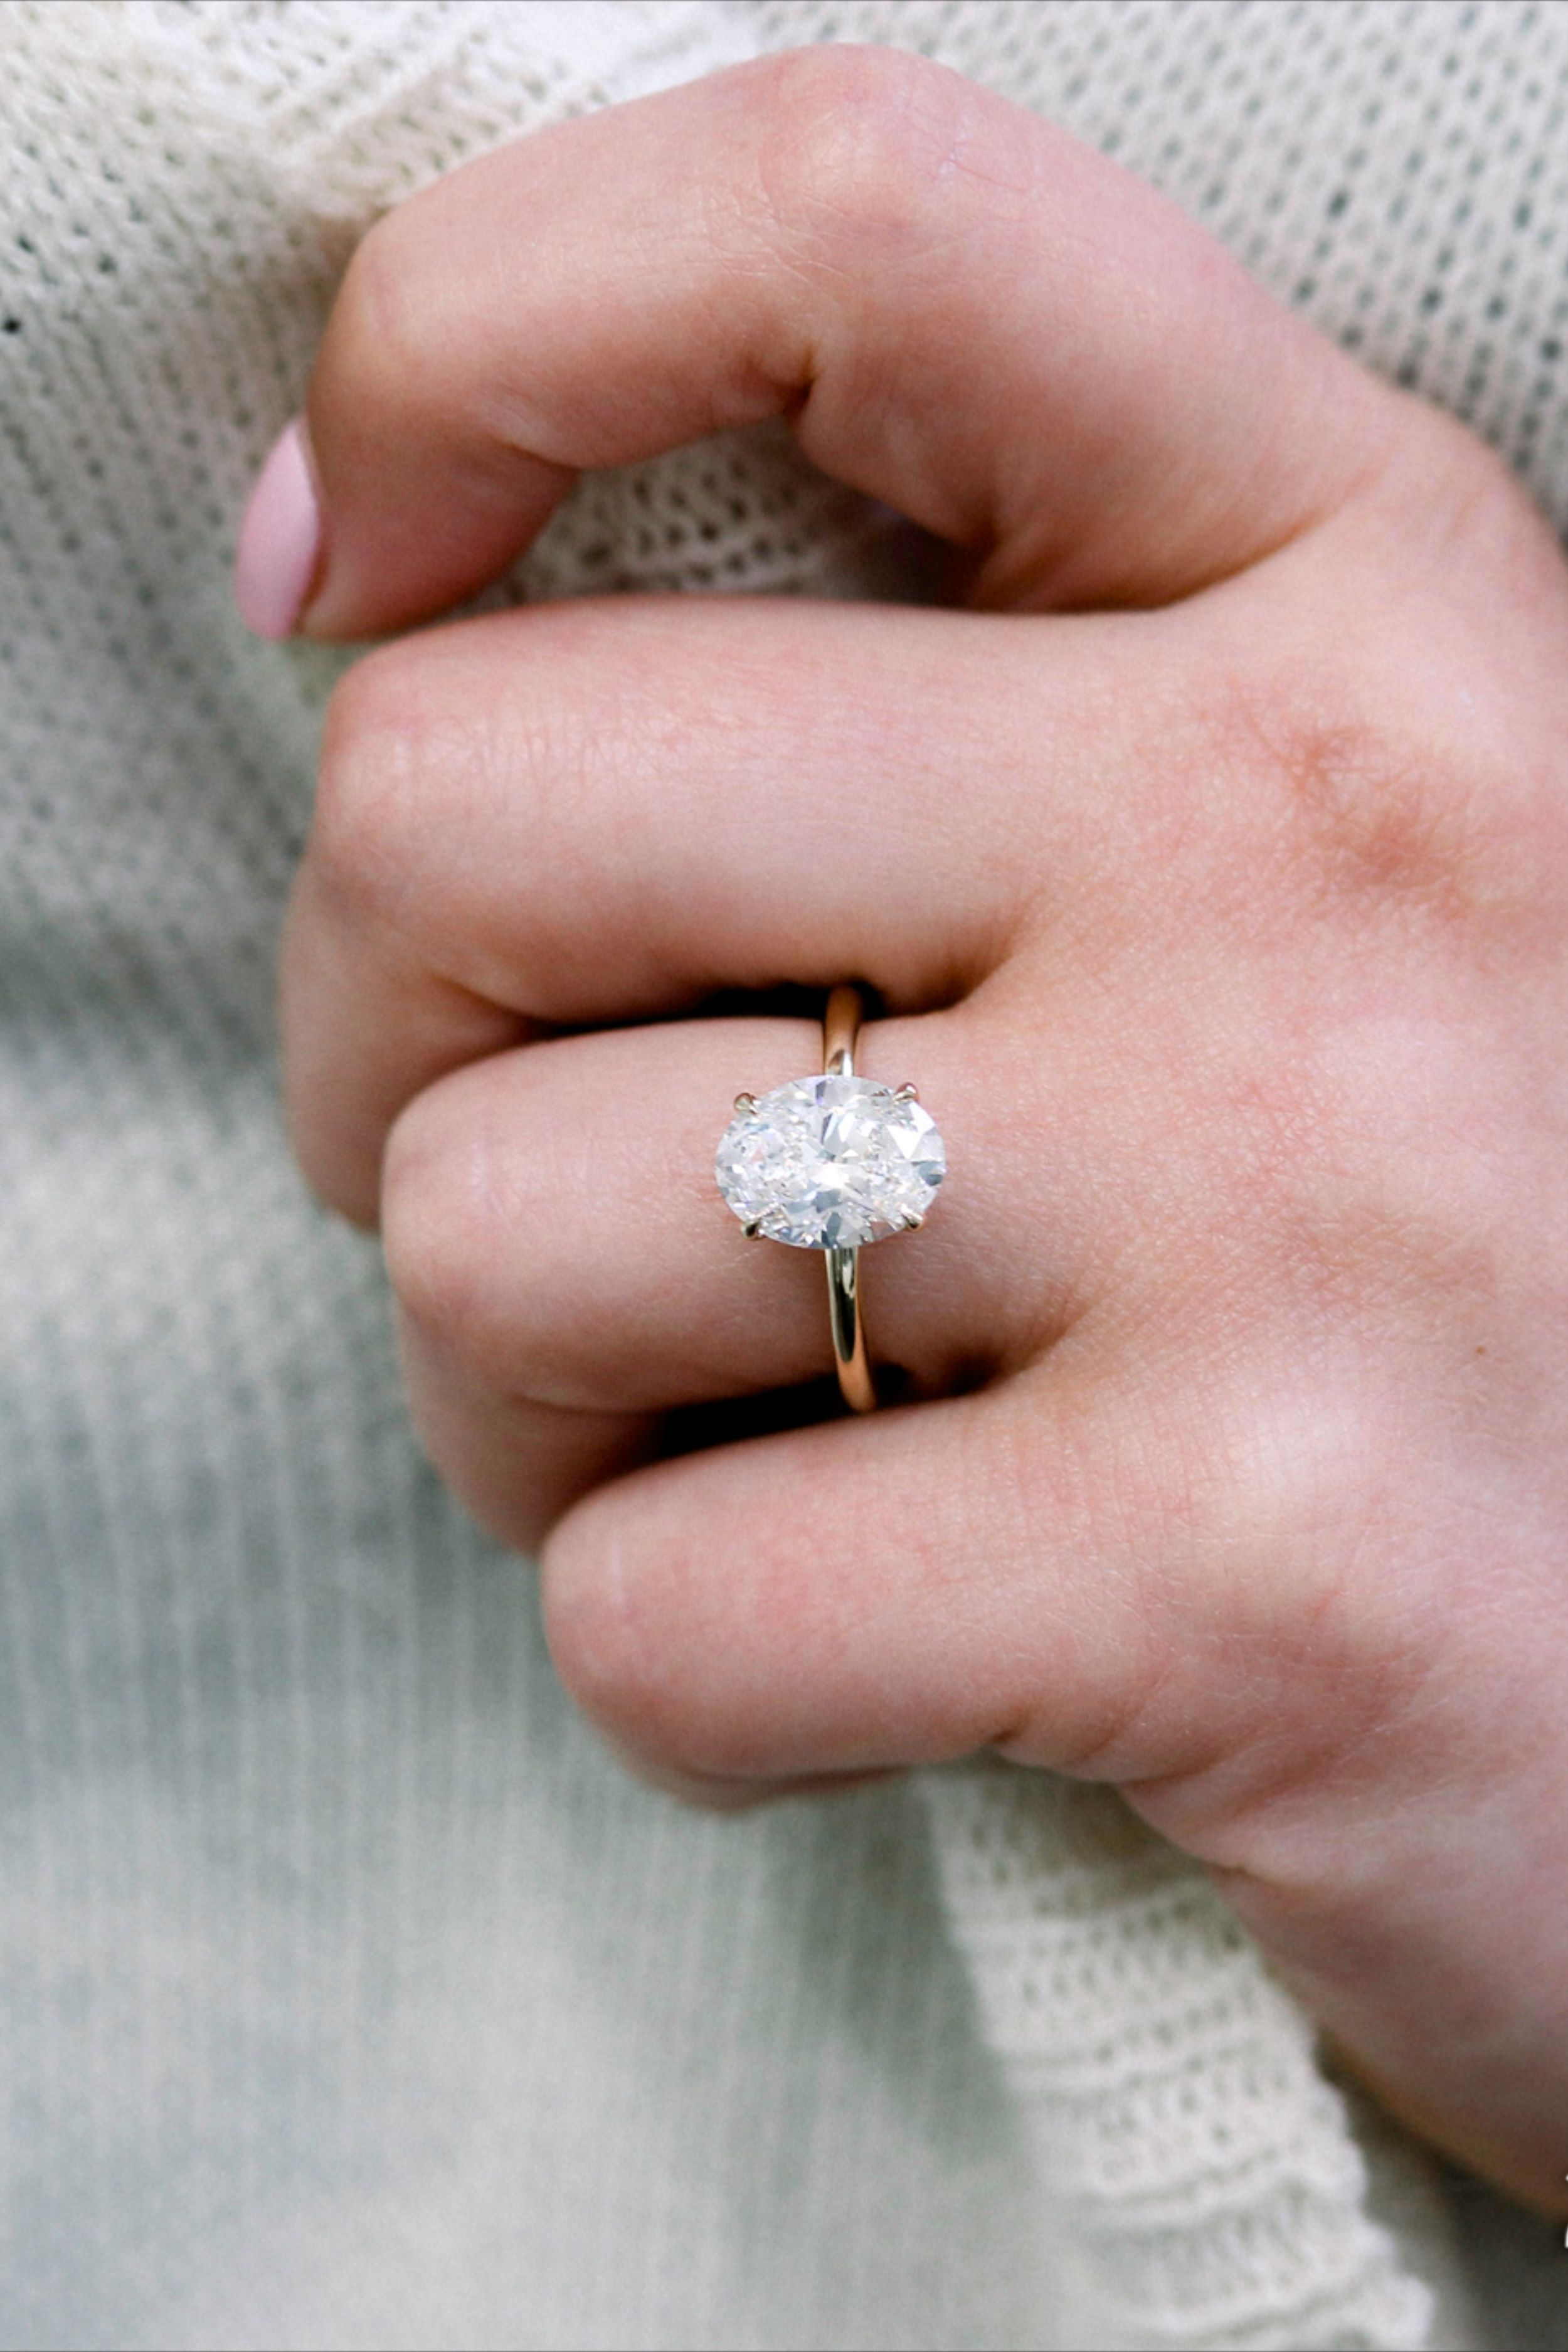 Details about  /1.35CT Oval Cut Diamond 14K Rose Gold Over Wedding Engagement Women Pretty Ring